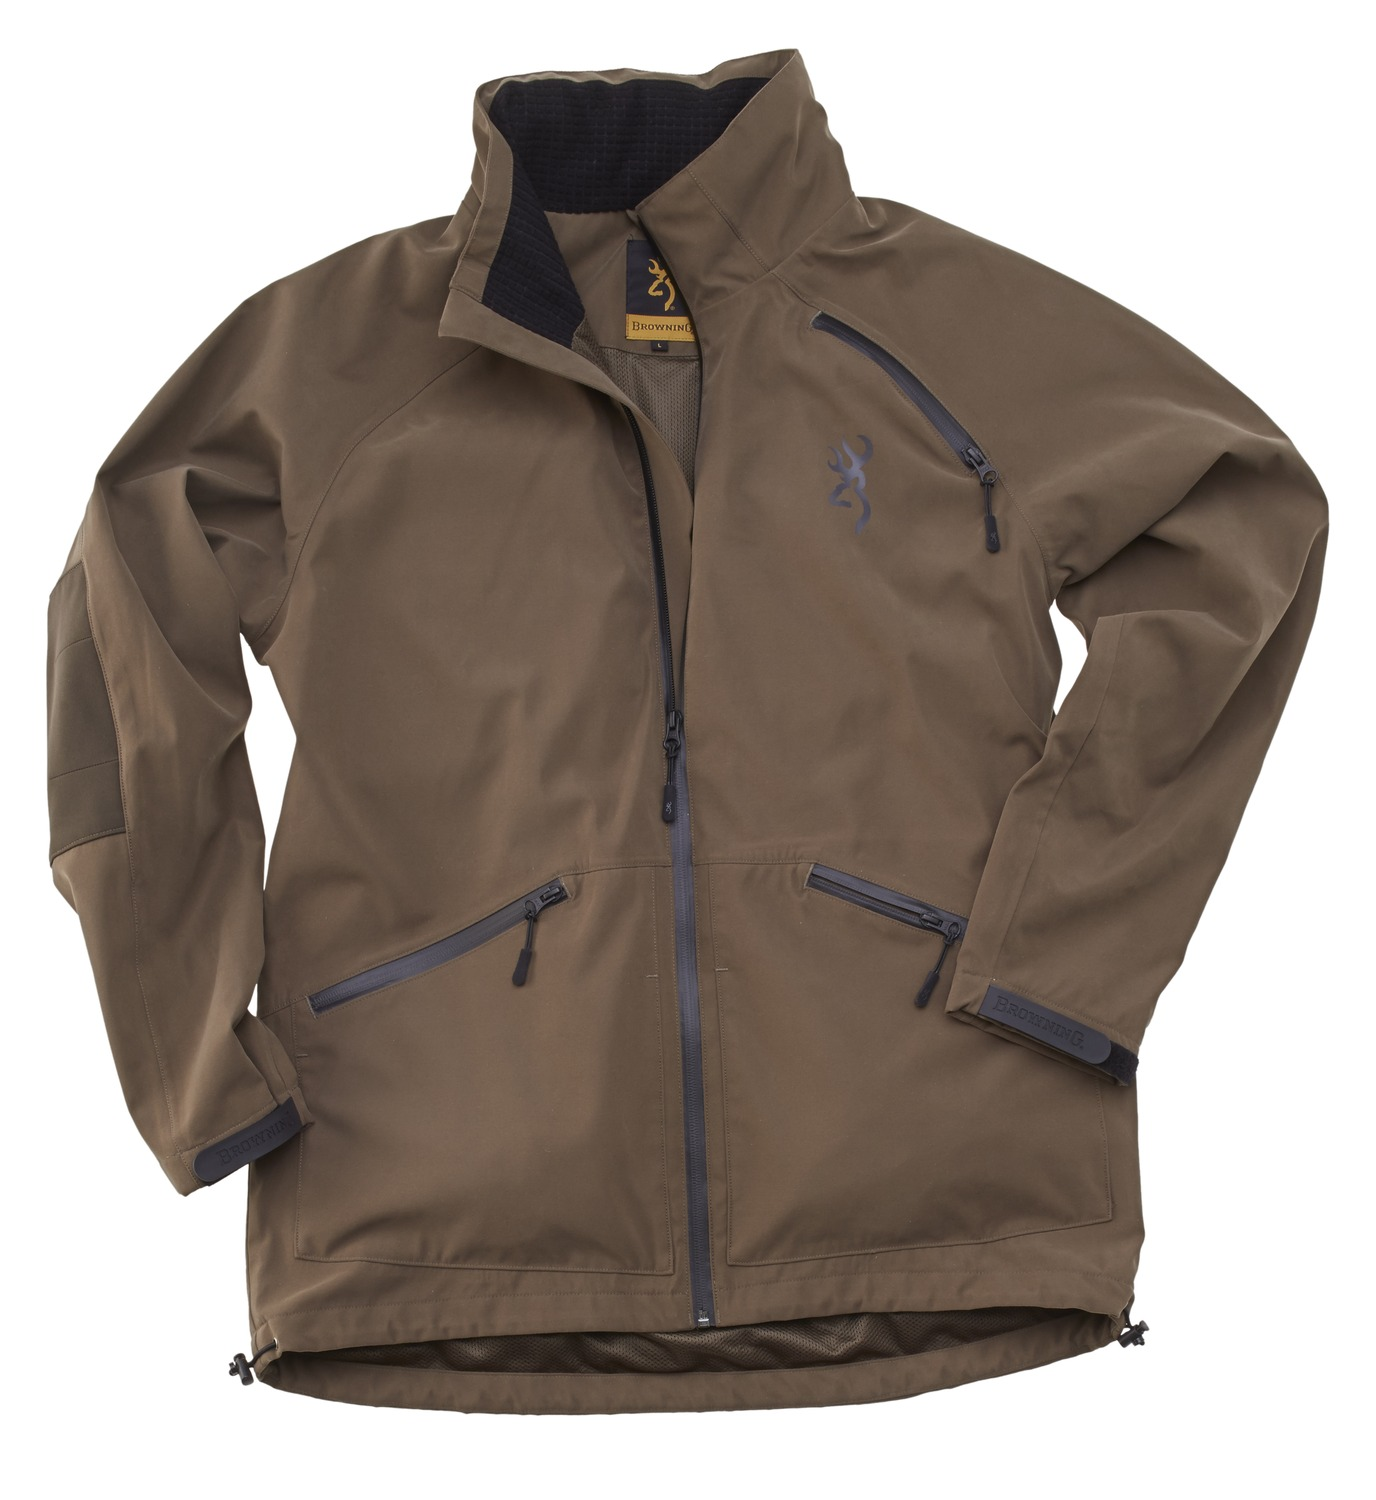 Browning Giacca Featherlight verde cod 30497539 Browning Featherlight Jacket cod 30497539